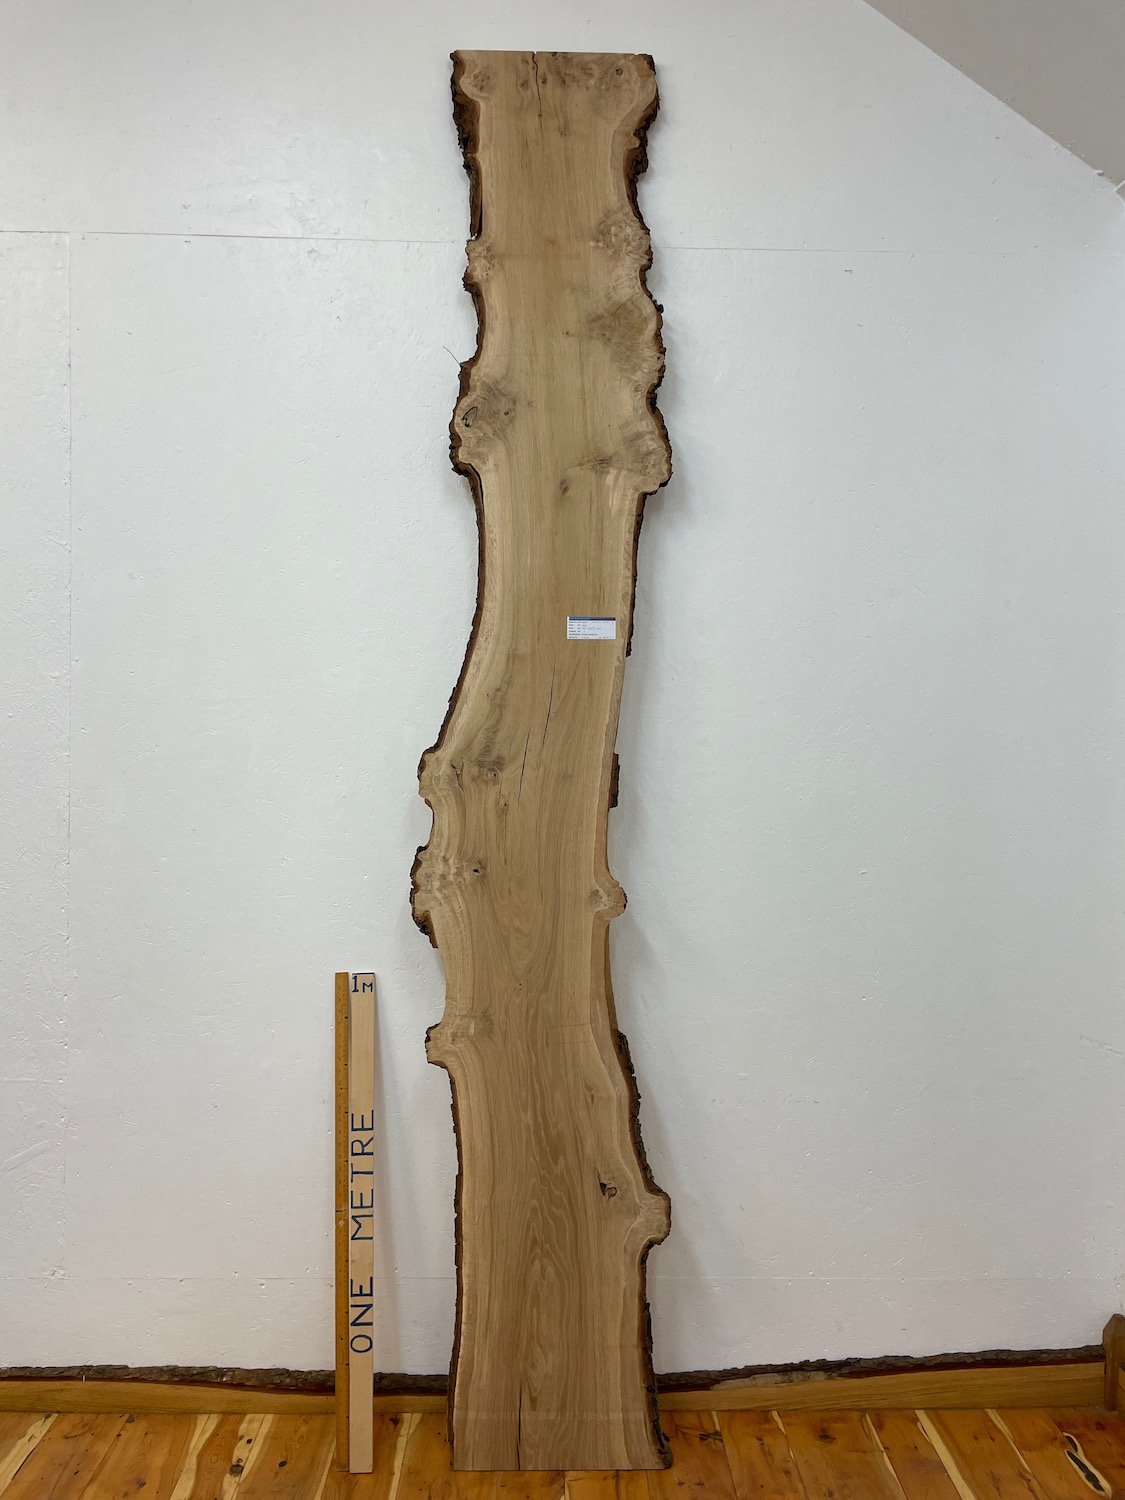 BURRY OAK Natural Waney Edge Slab Wood Timber Board 1559A-4 Thickness 3cm Kiln Dried Planed & Thicknessed Seasoned Hardwood Wildwood